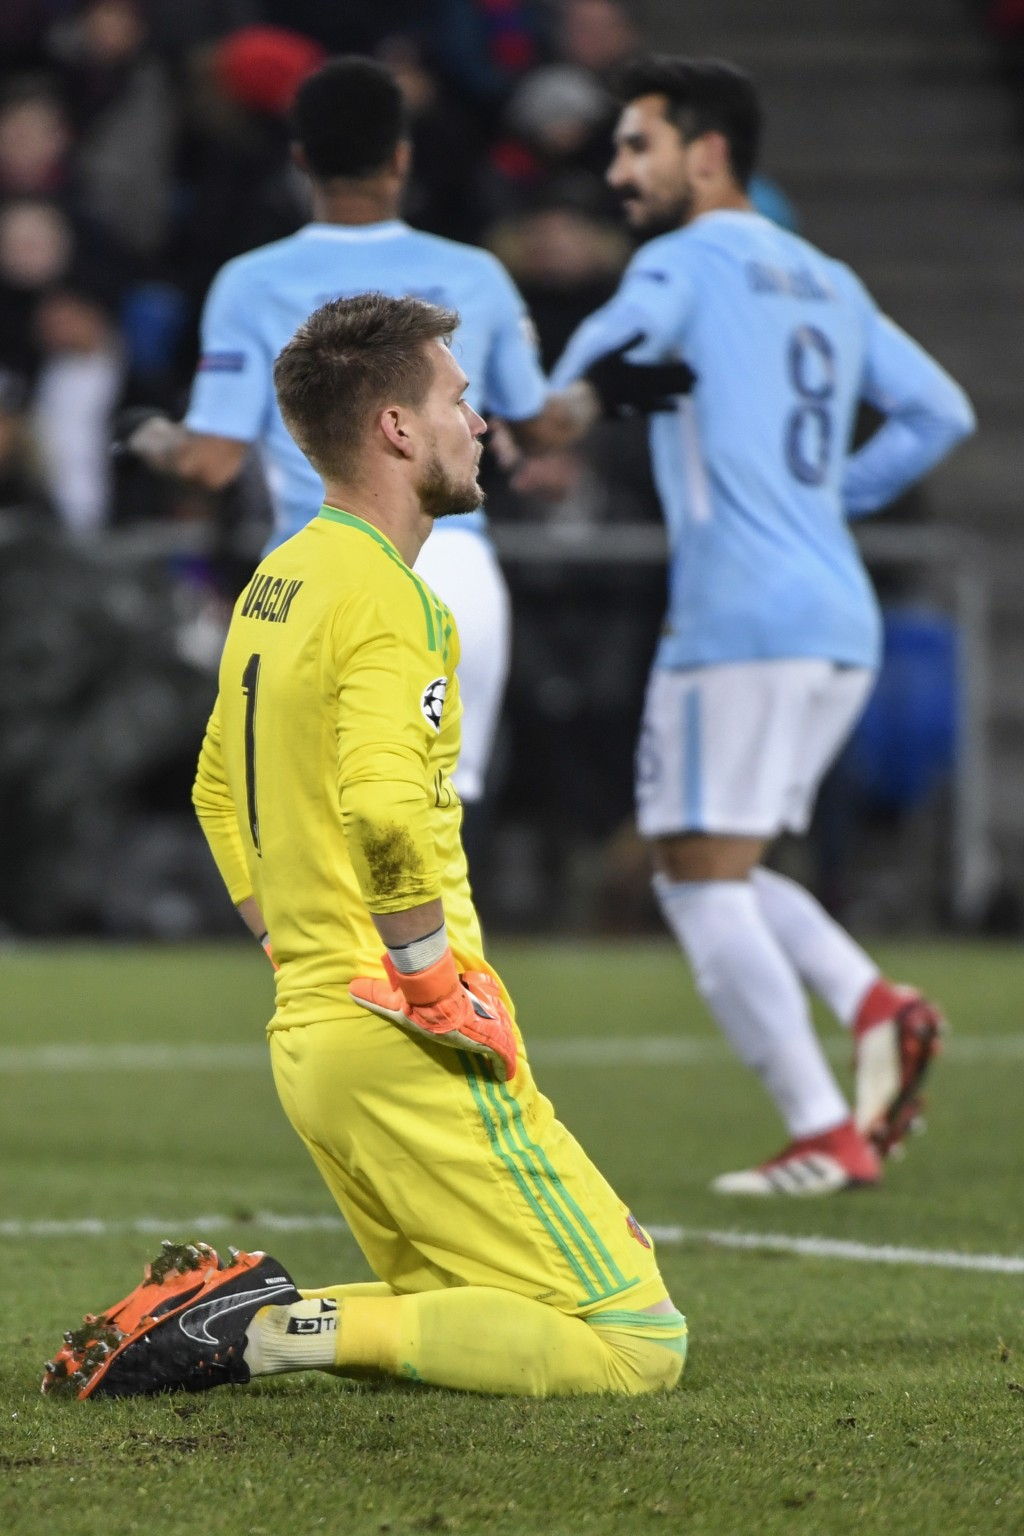 Basel's goalkeeper Tomas Vaclik, front, looks on as Manchester City's Raheem Sterling, left, and Ilkay Gundogan celebrate during the Champions League